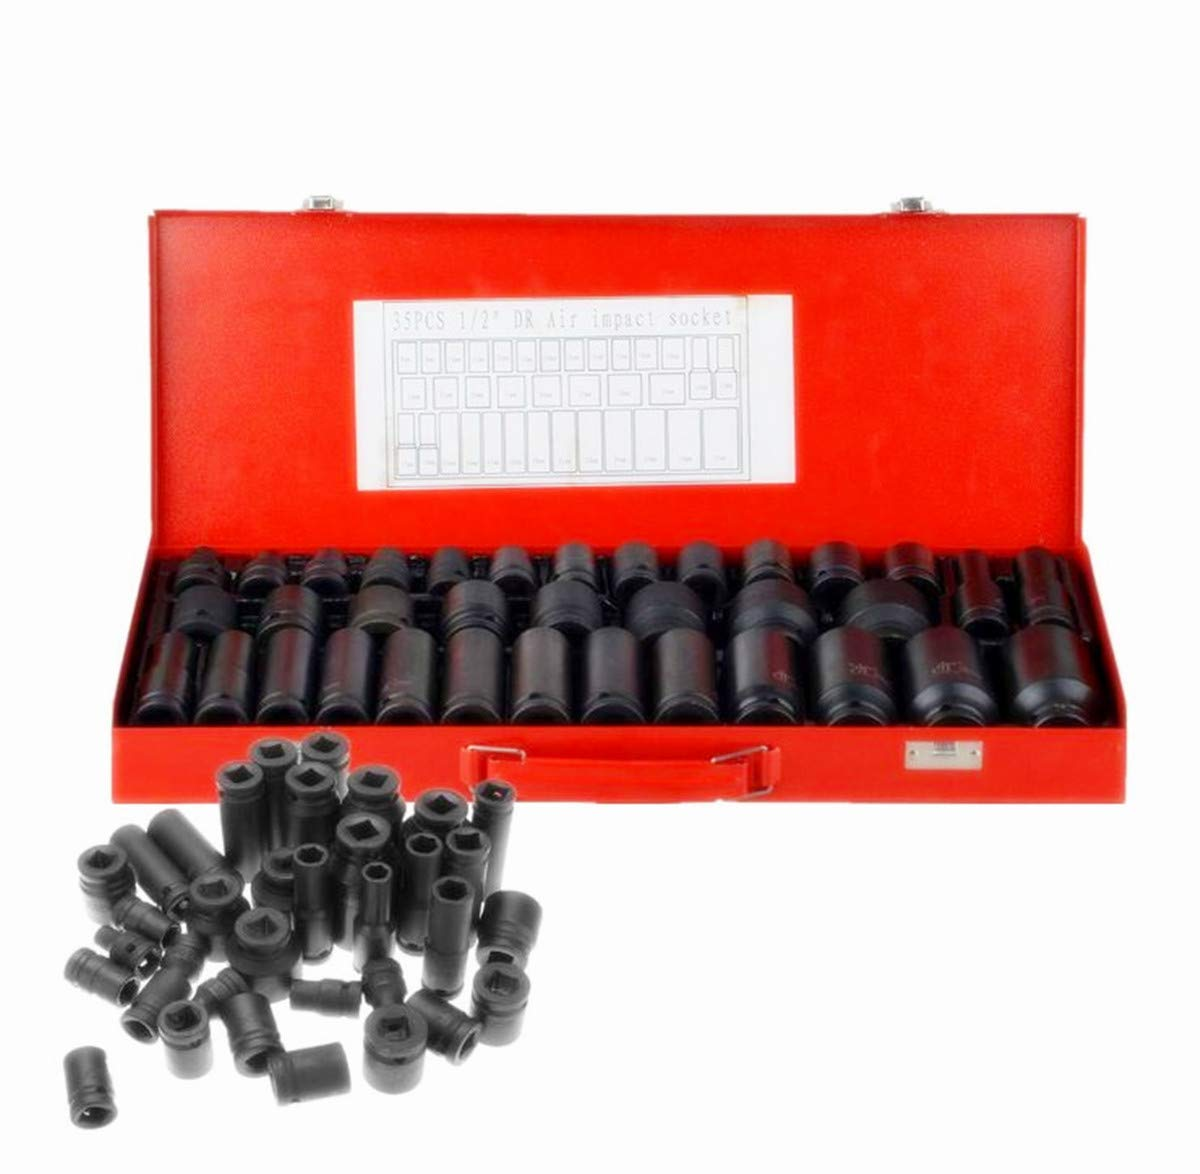 1//4-Inch Drive Shallow Impact Socket 6-point Cr-v Metric 19mm 2 pieces